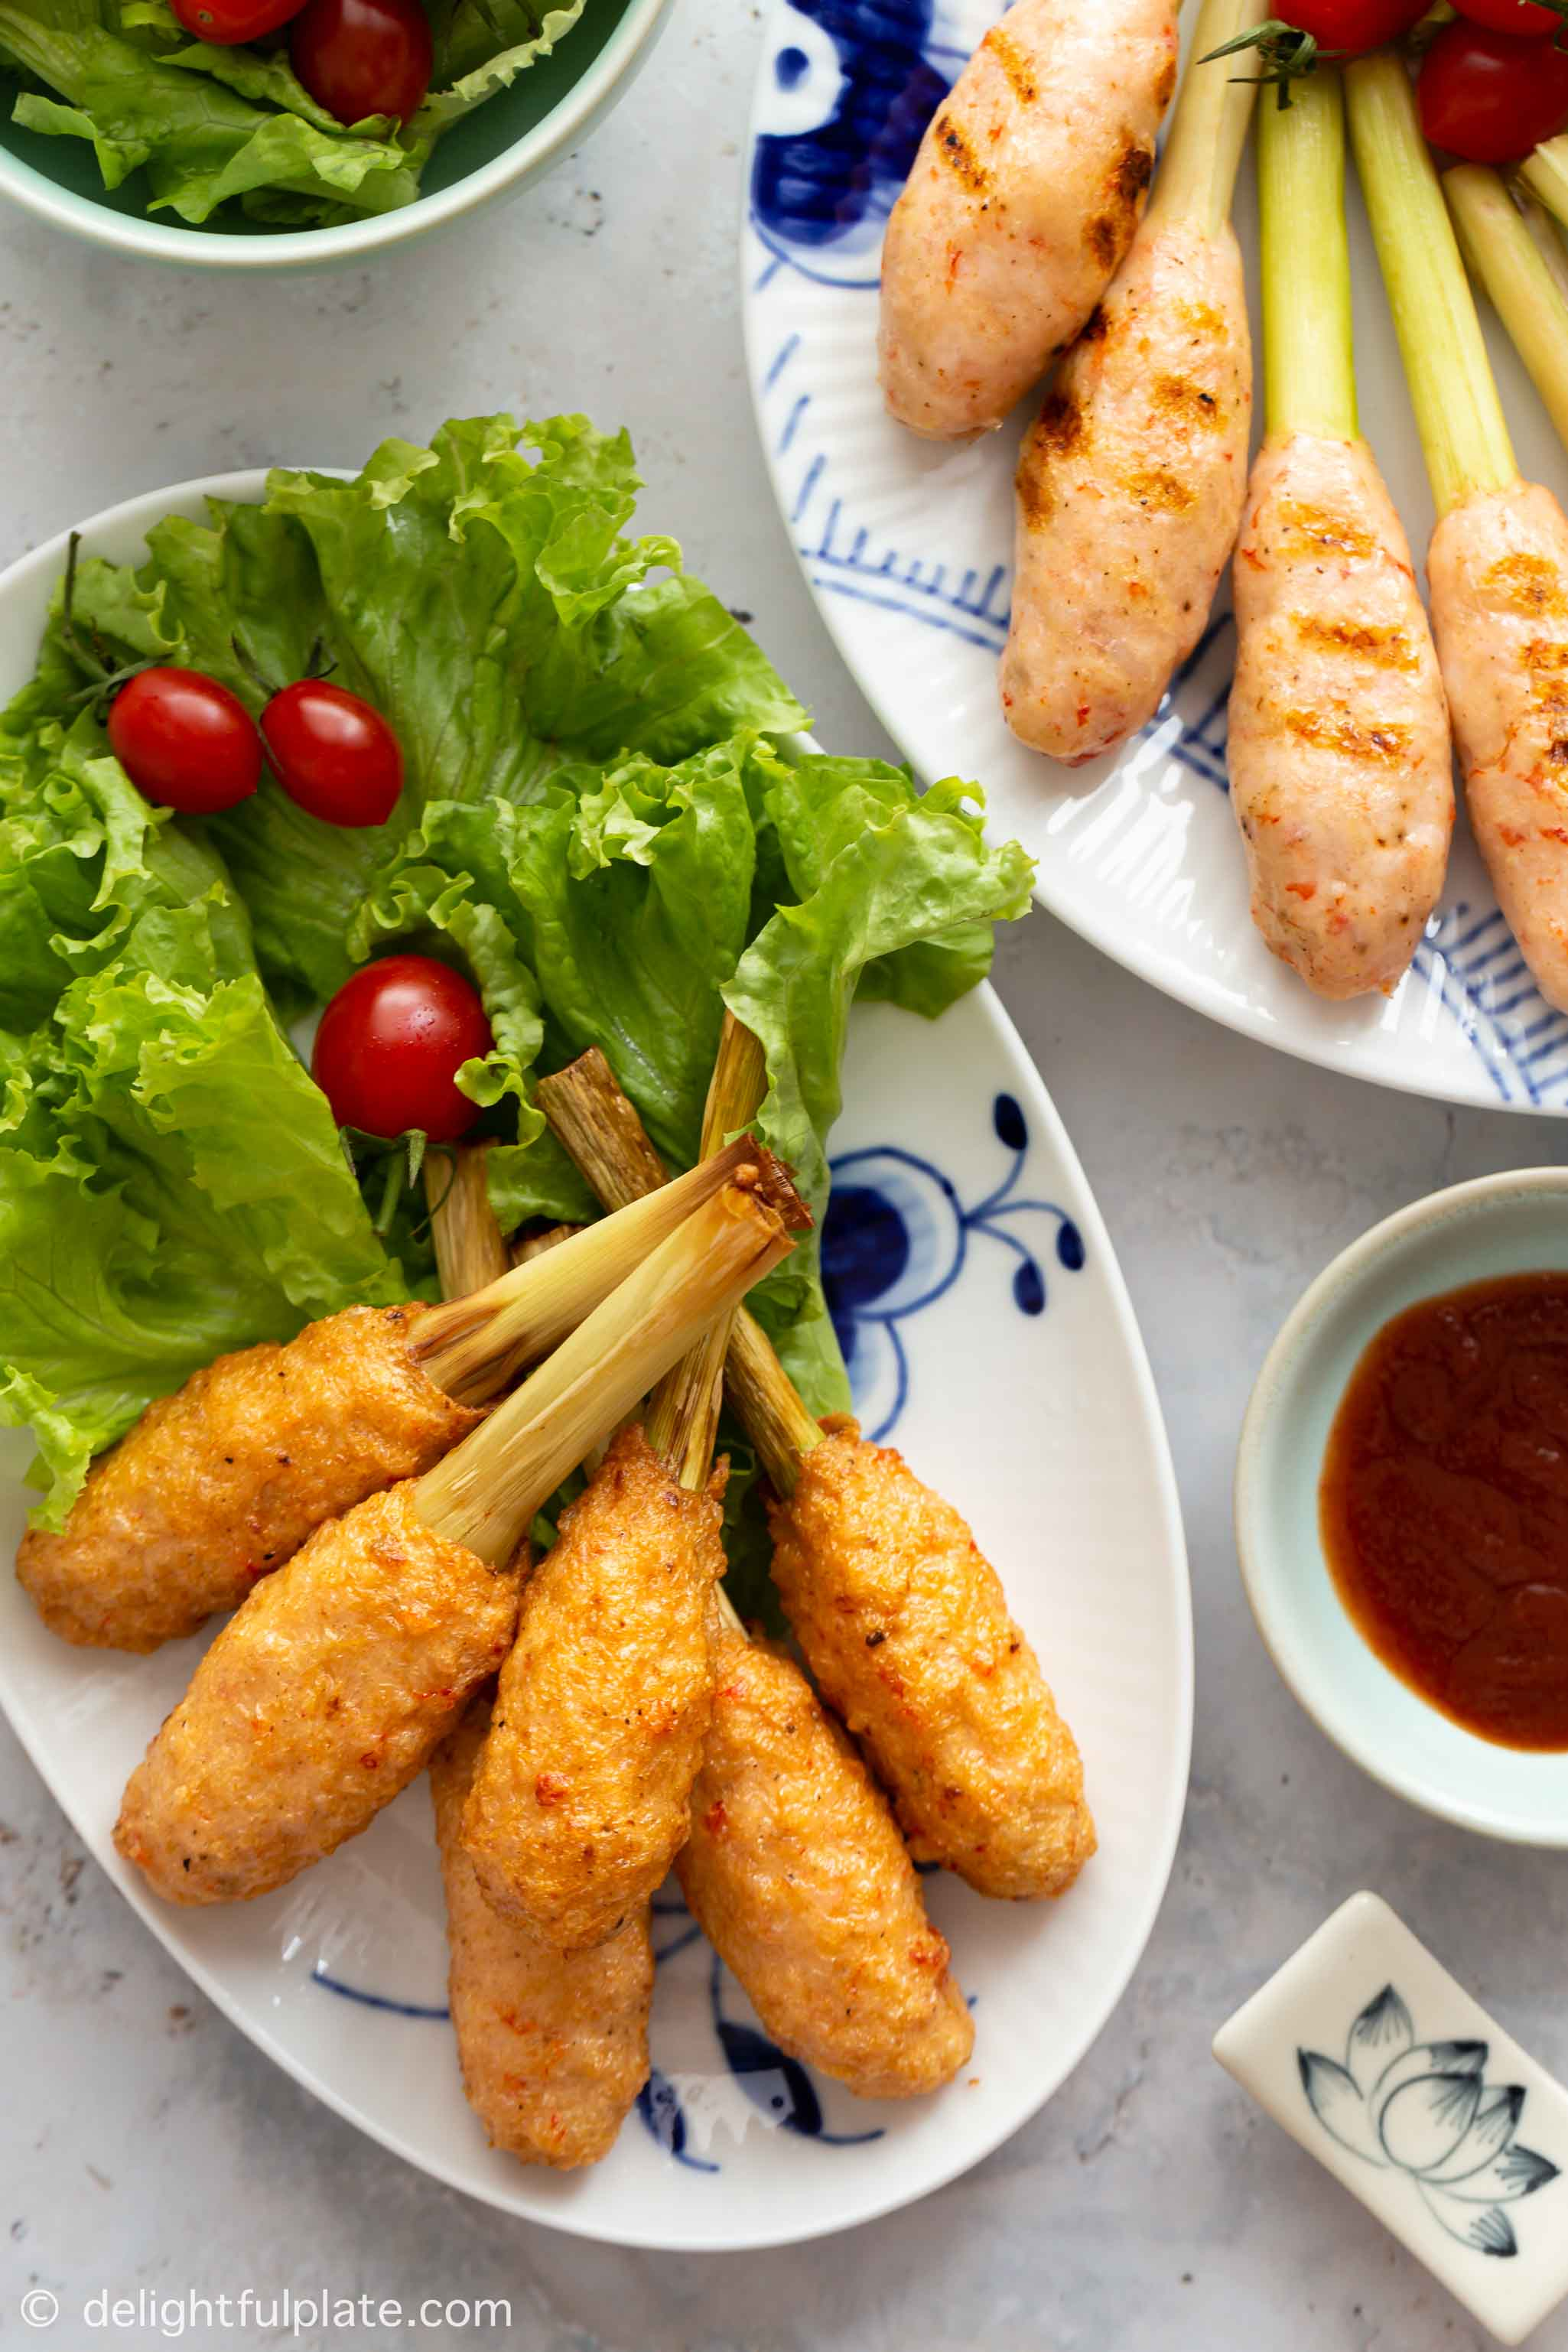 Two plates with Vietnamese shrimp on lemongrass sticks: one with fried sticks and the other one with grilled sticks